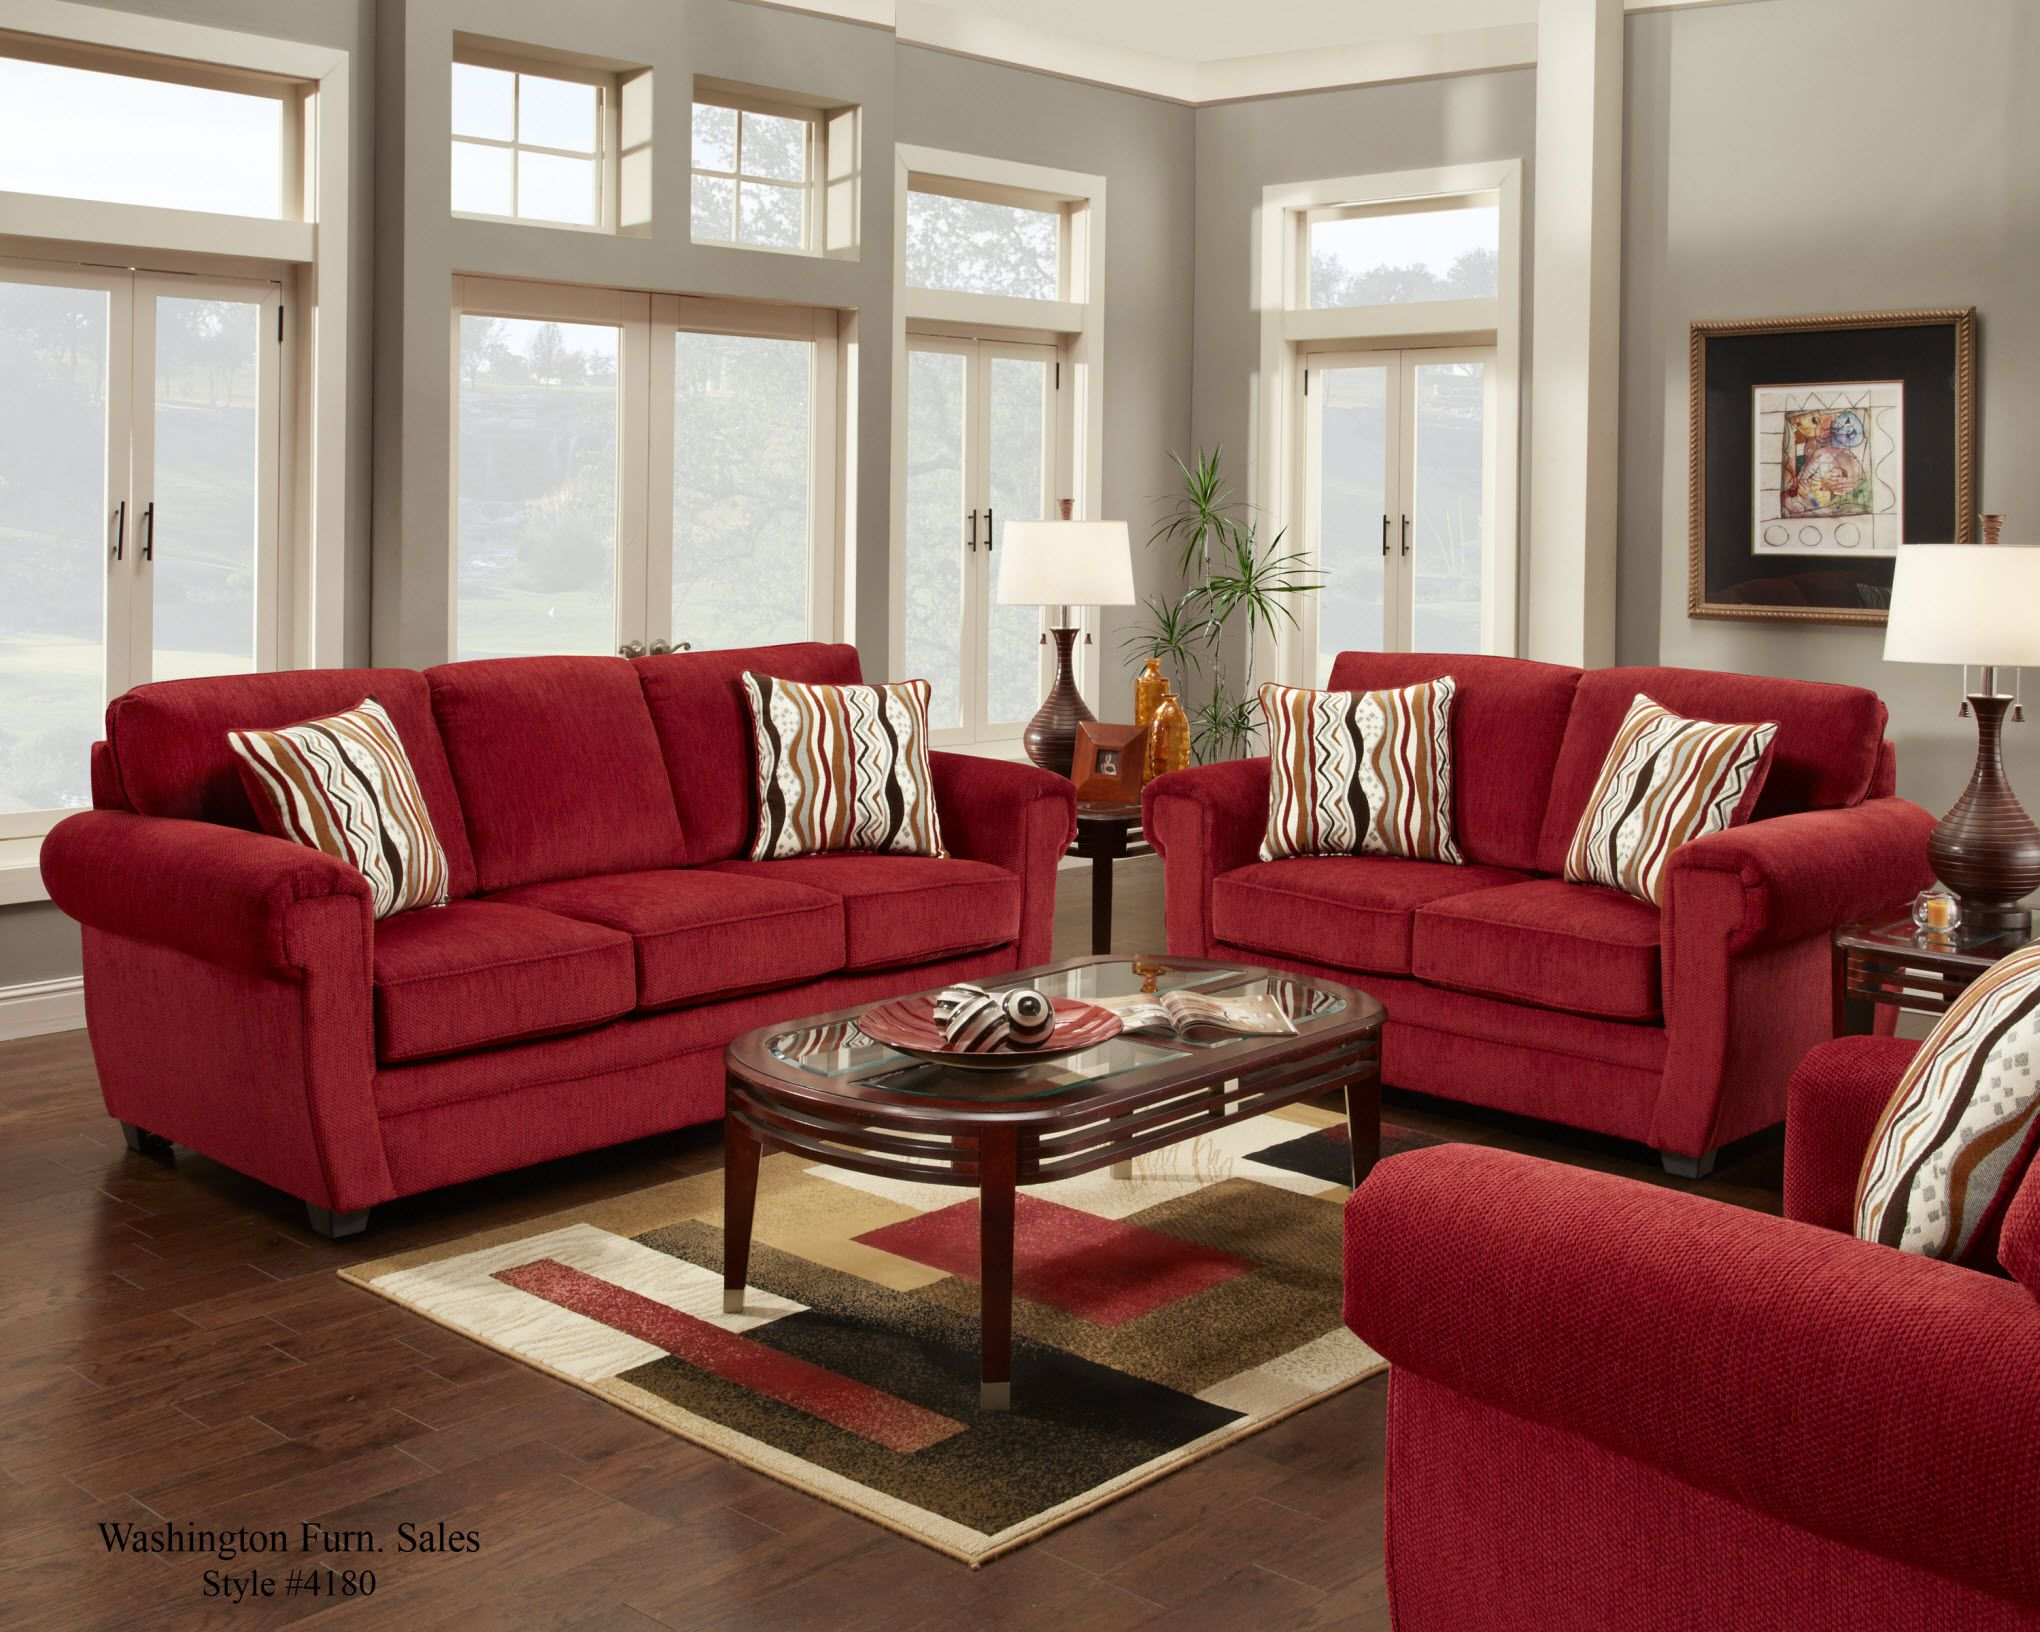 4180 washington samson red sofa and loveseat www for Red living room ideas